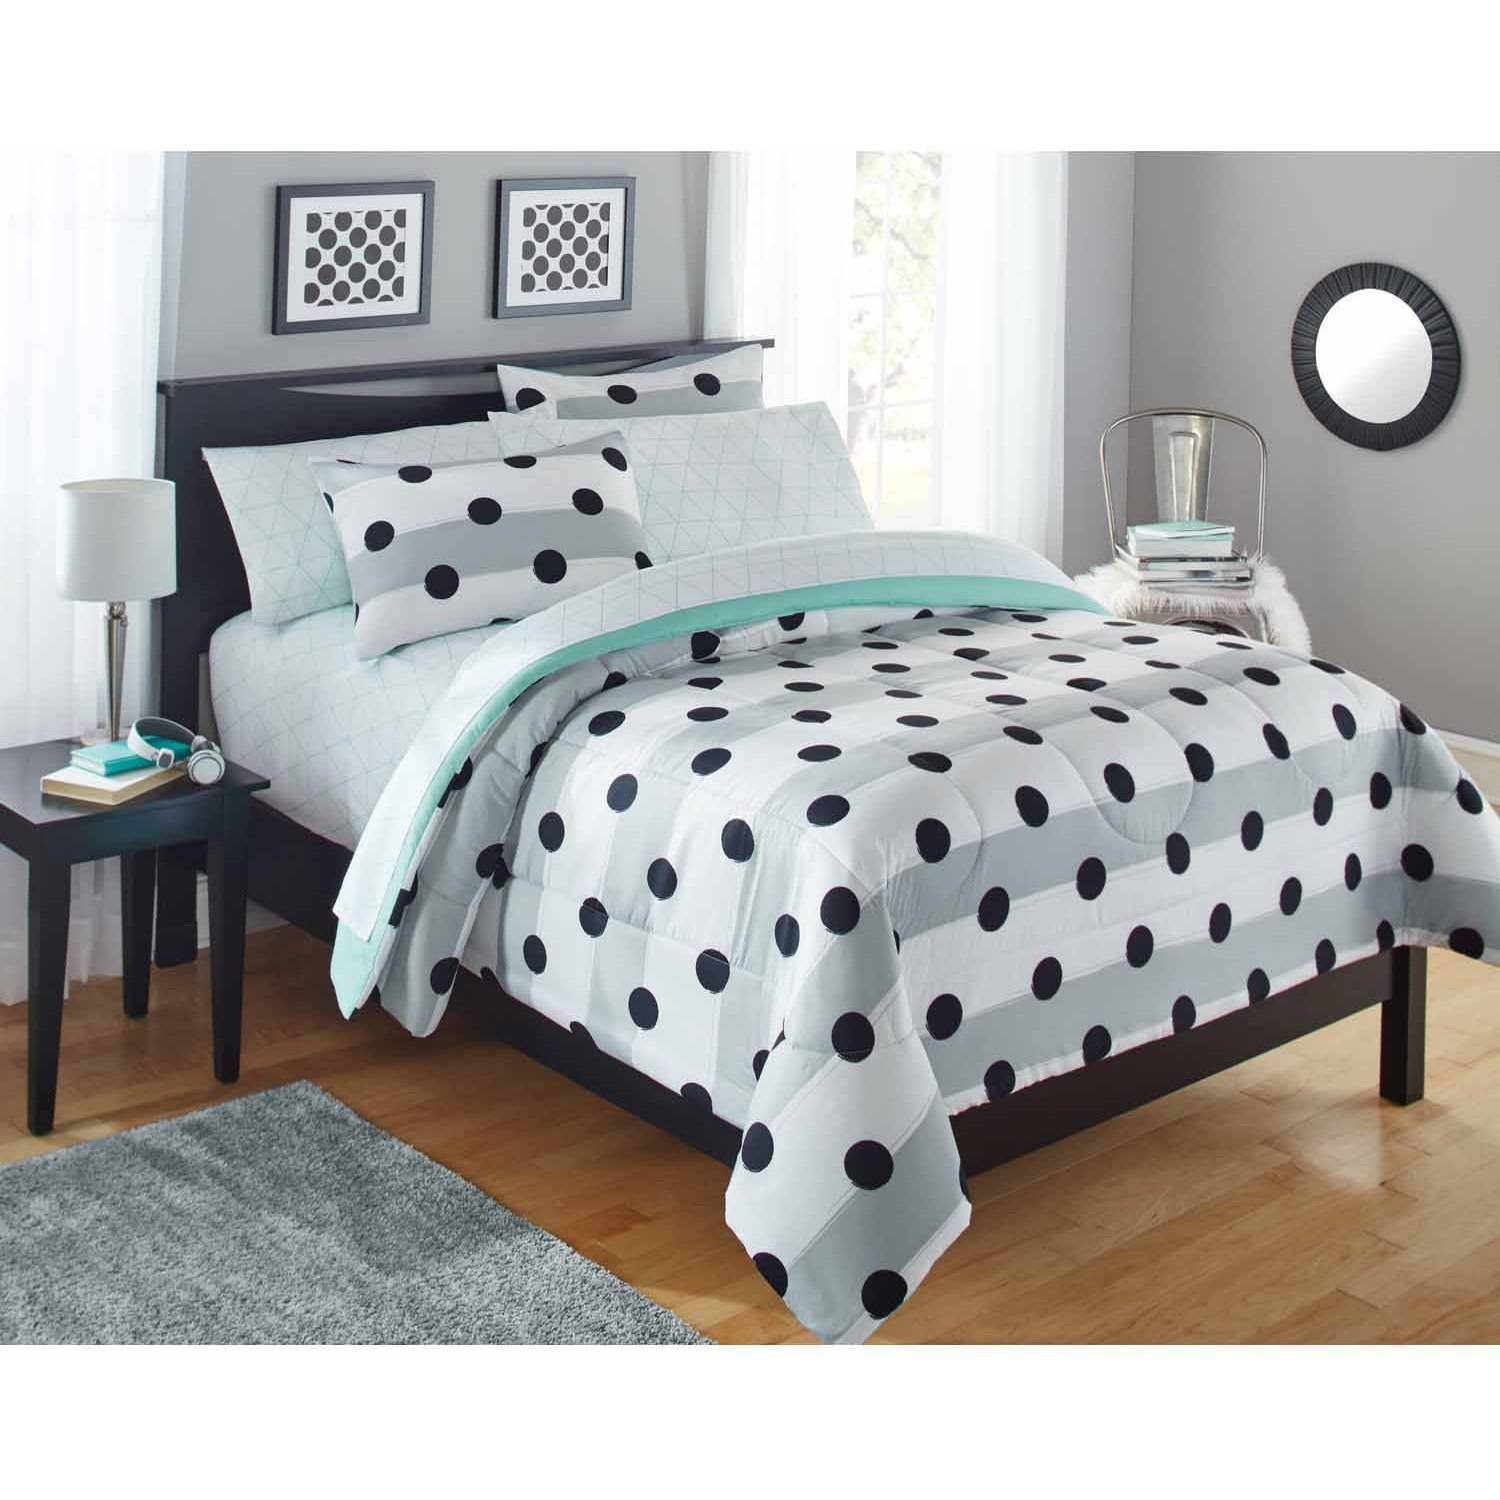 Awesome Your Zone Grey Stripe Dot Bed In A Bag Bedding Comforter Set   Walmart.com